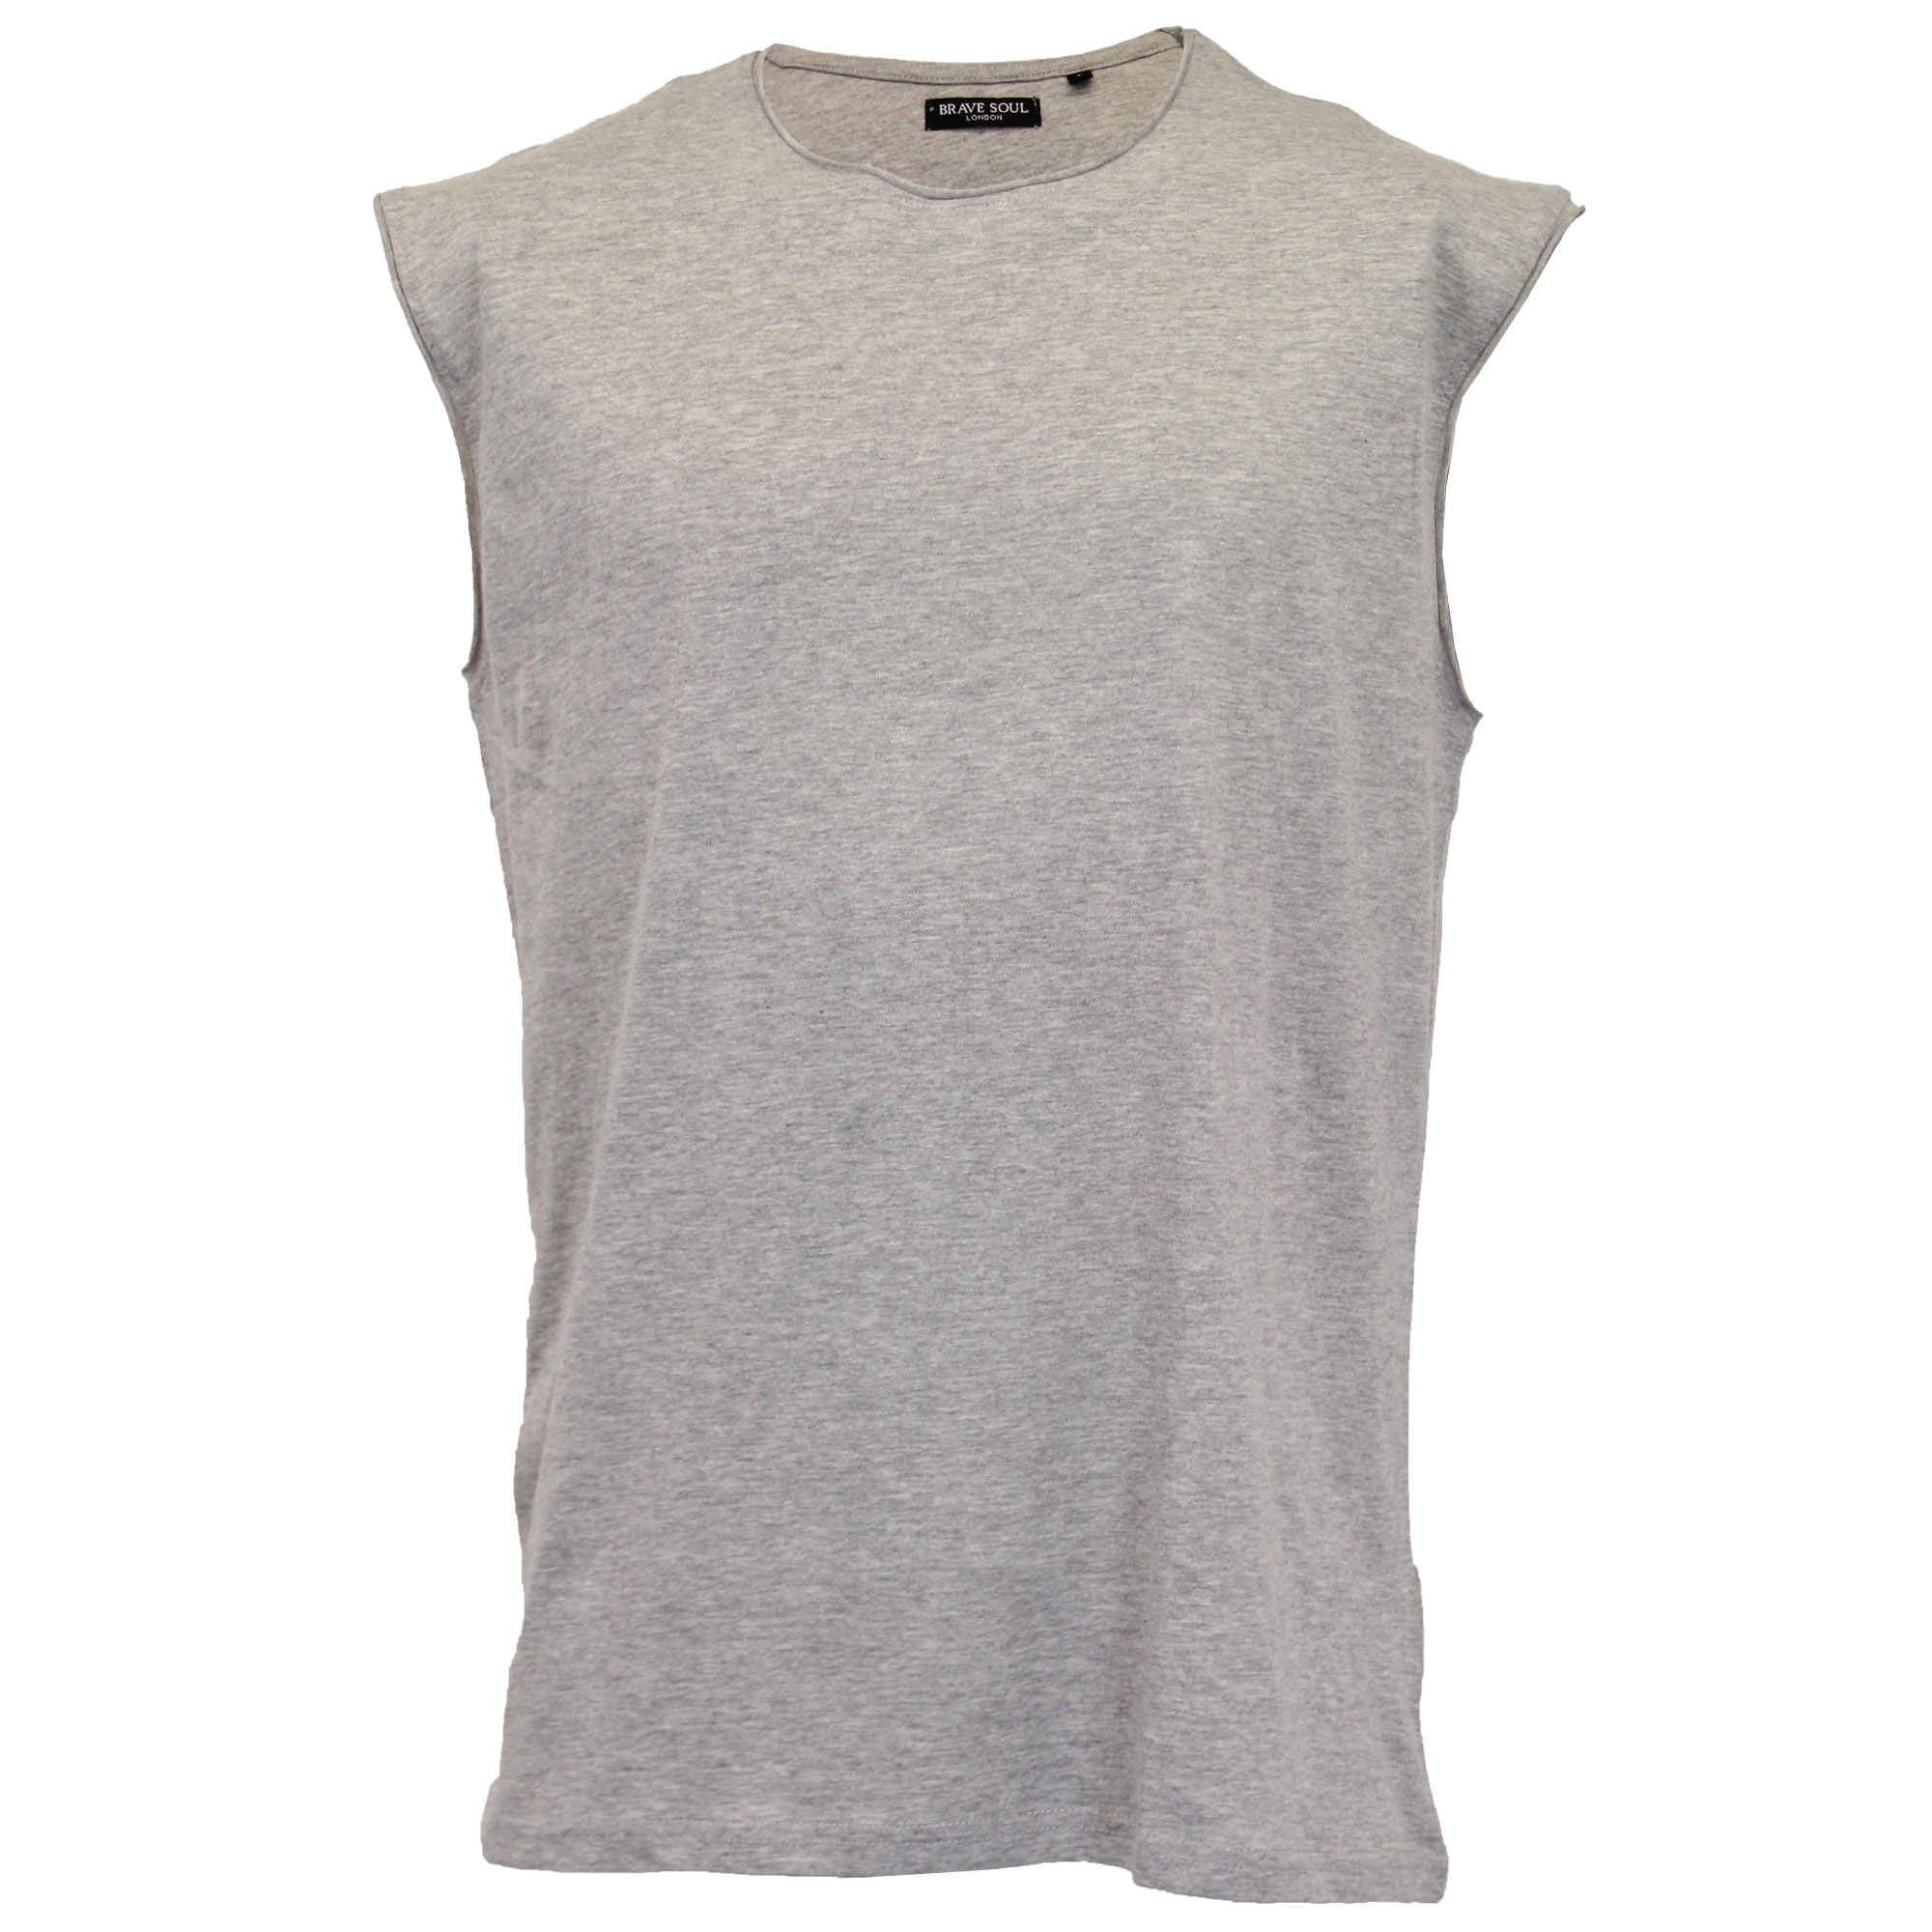 Mens-Vest-Brave-Soul-Tank-Top-Varley-Gym-Training-Crew-Neck-Casual-Summer-New thumbnail 7